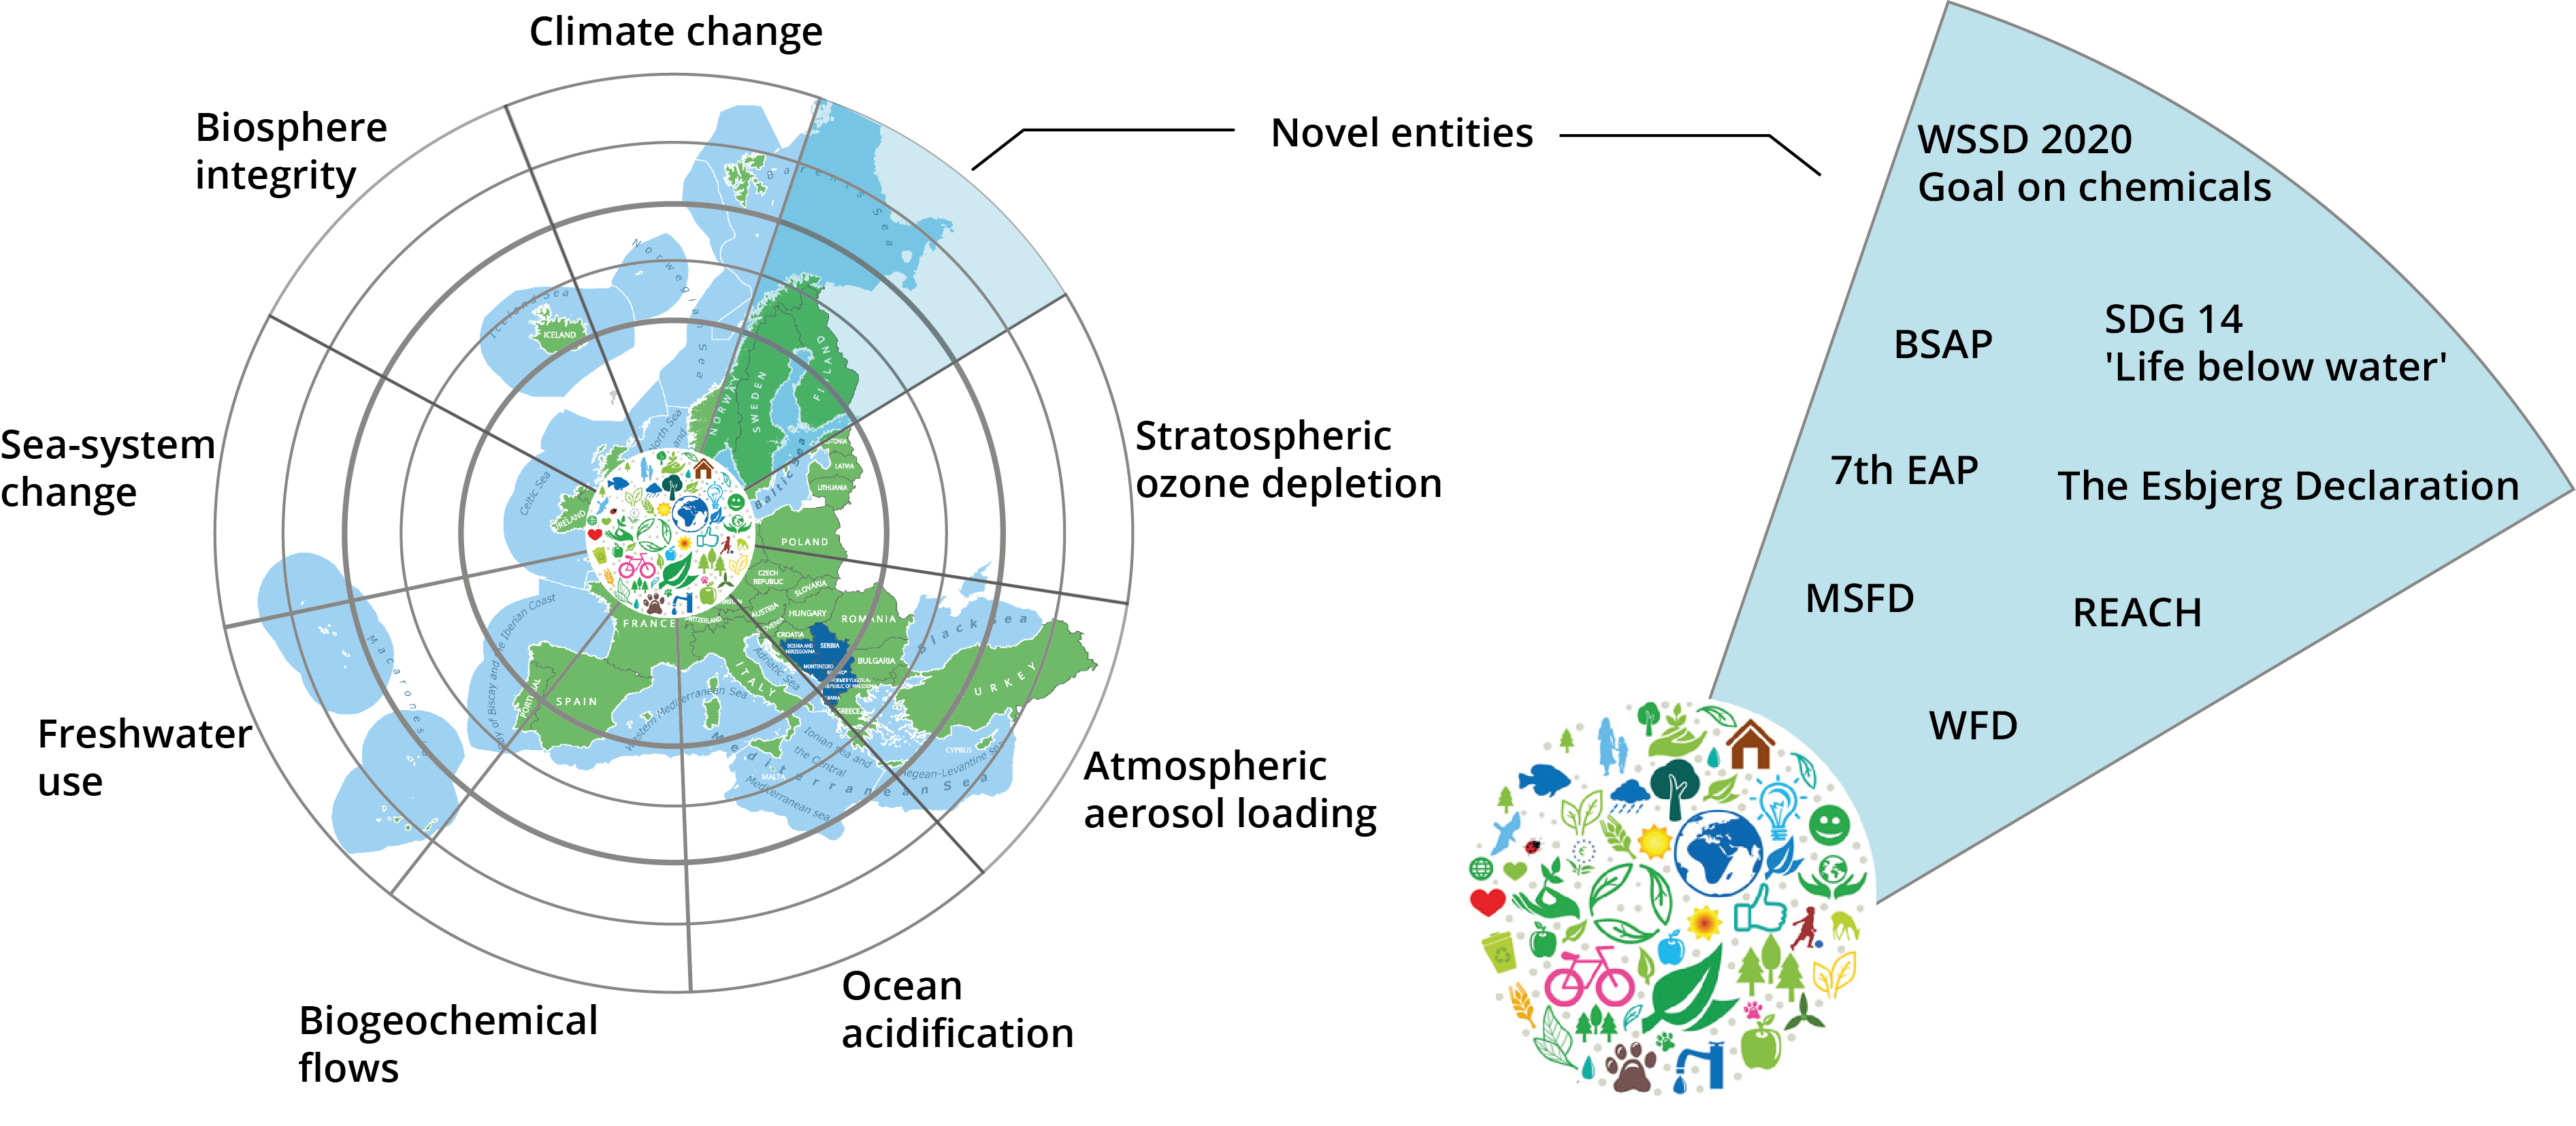 Living well within planetary limits - bridging the gap between science and policy